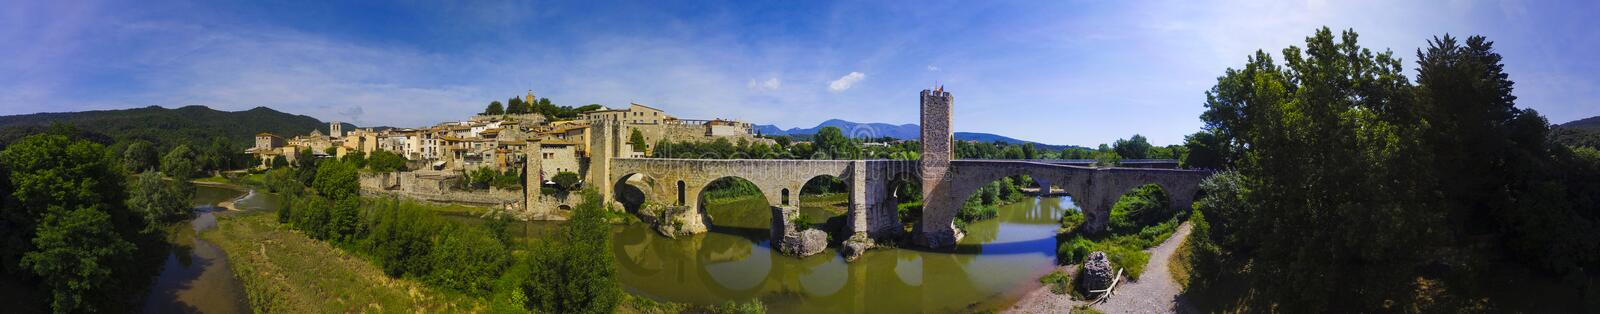 Panorama from medieval town of Besalu. A panoramic view of Besalú, a town in the comarca of Garrotxa, in Girona, Catalonia, Spain stock image